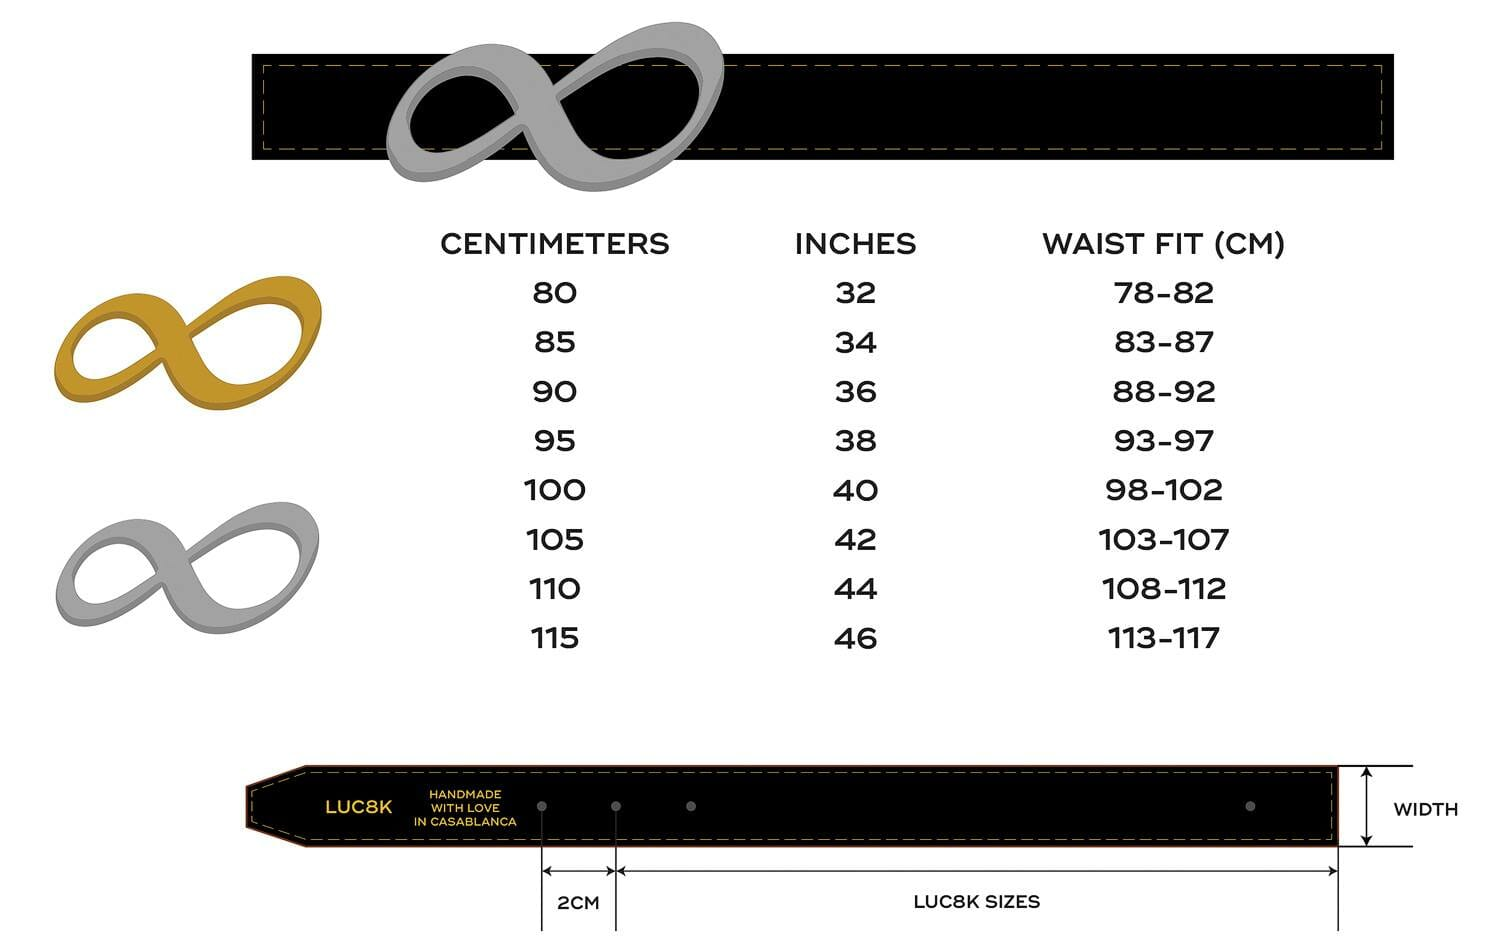 Custom Leather Belts Size Chart by Luc8k. The picture shows 2 belts and how to measure the size for a customized leather belt